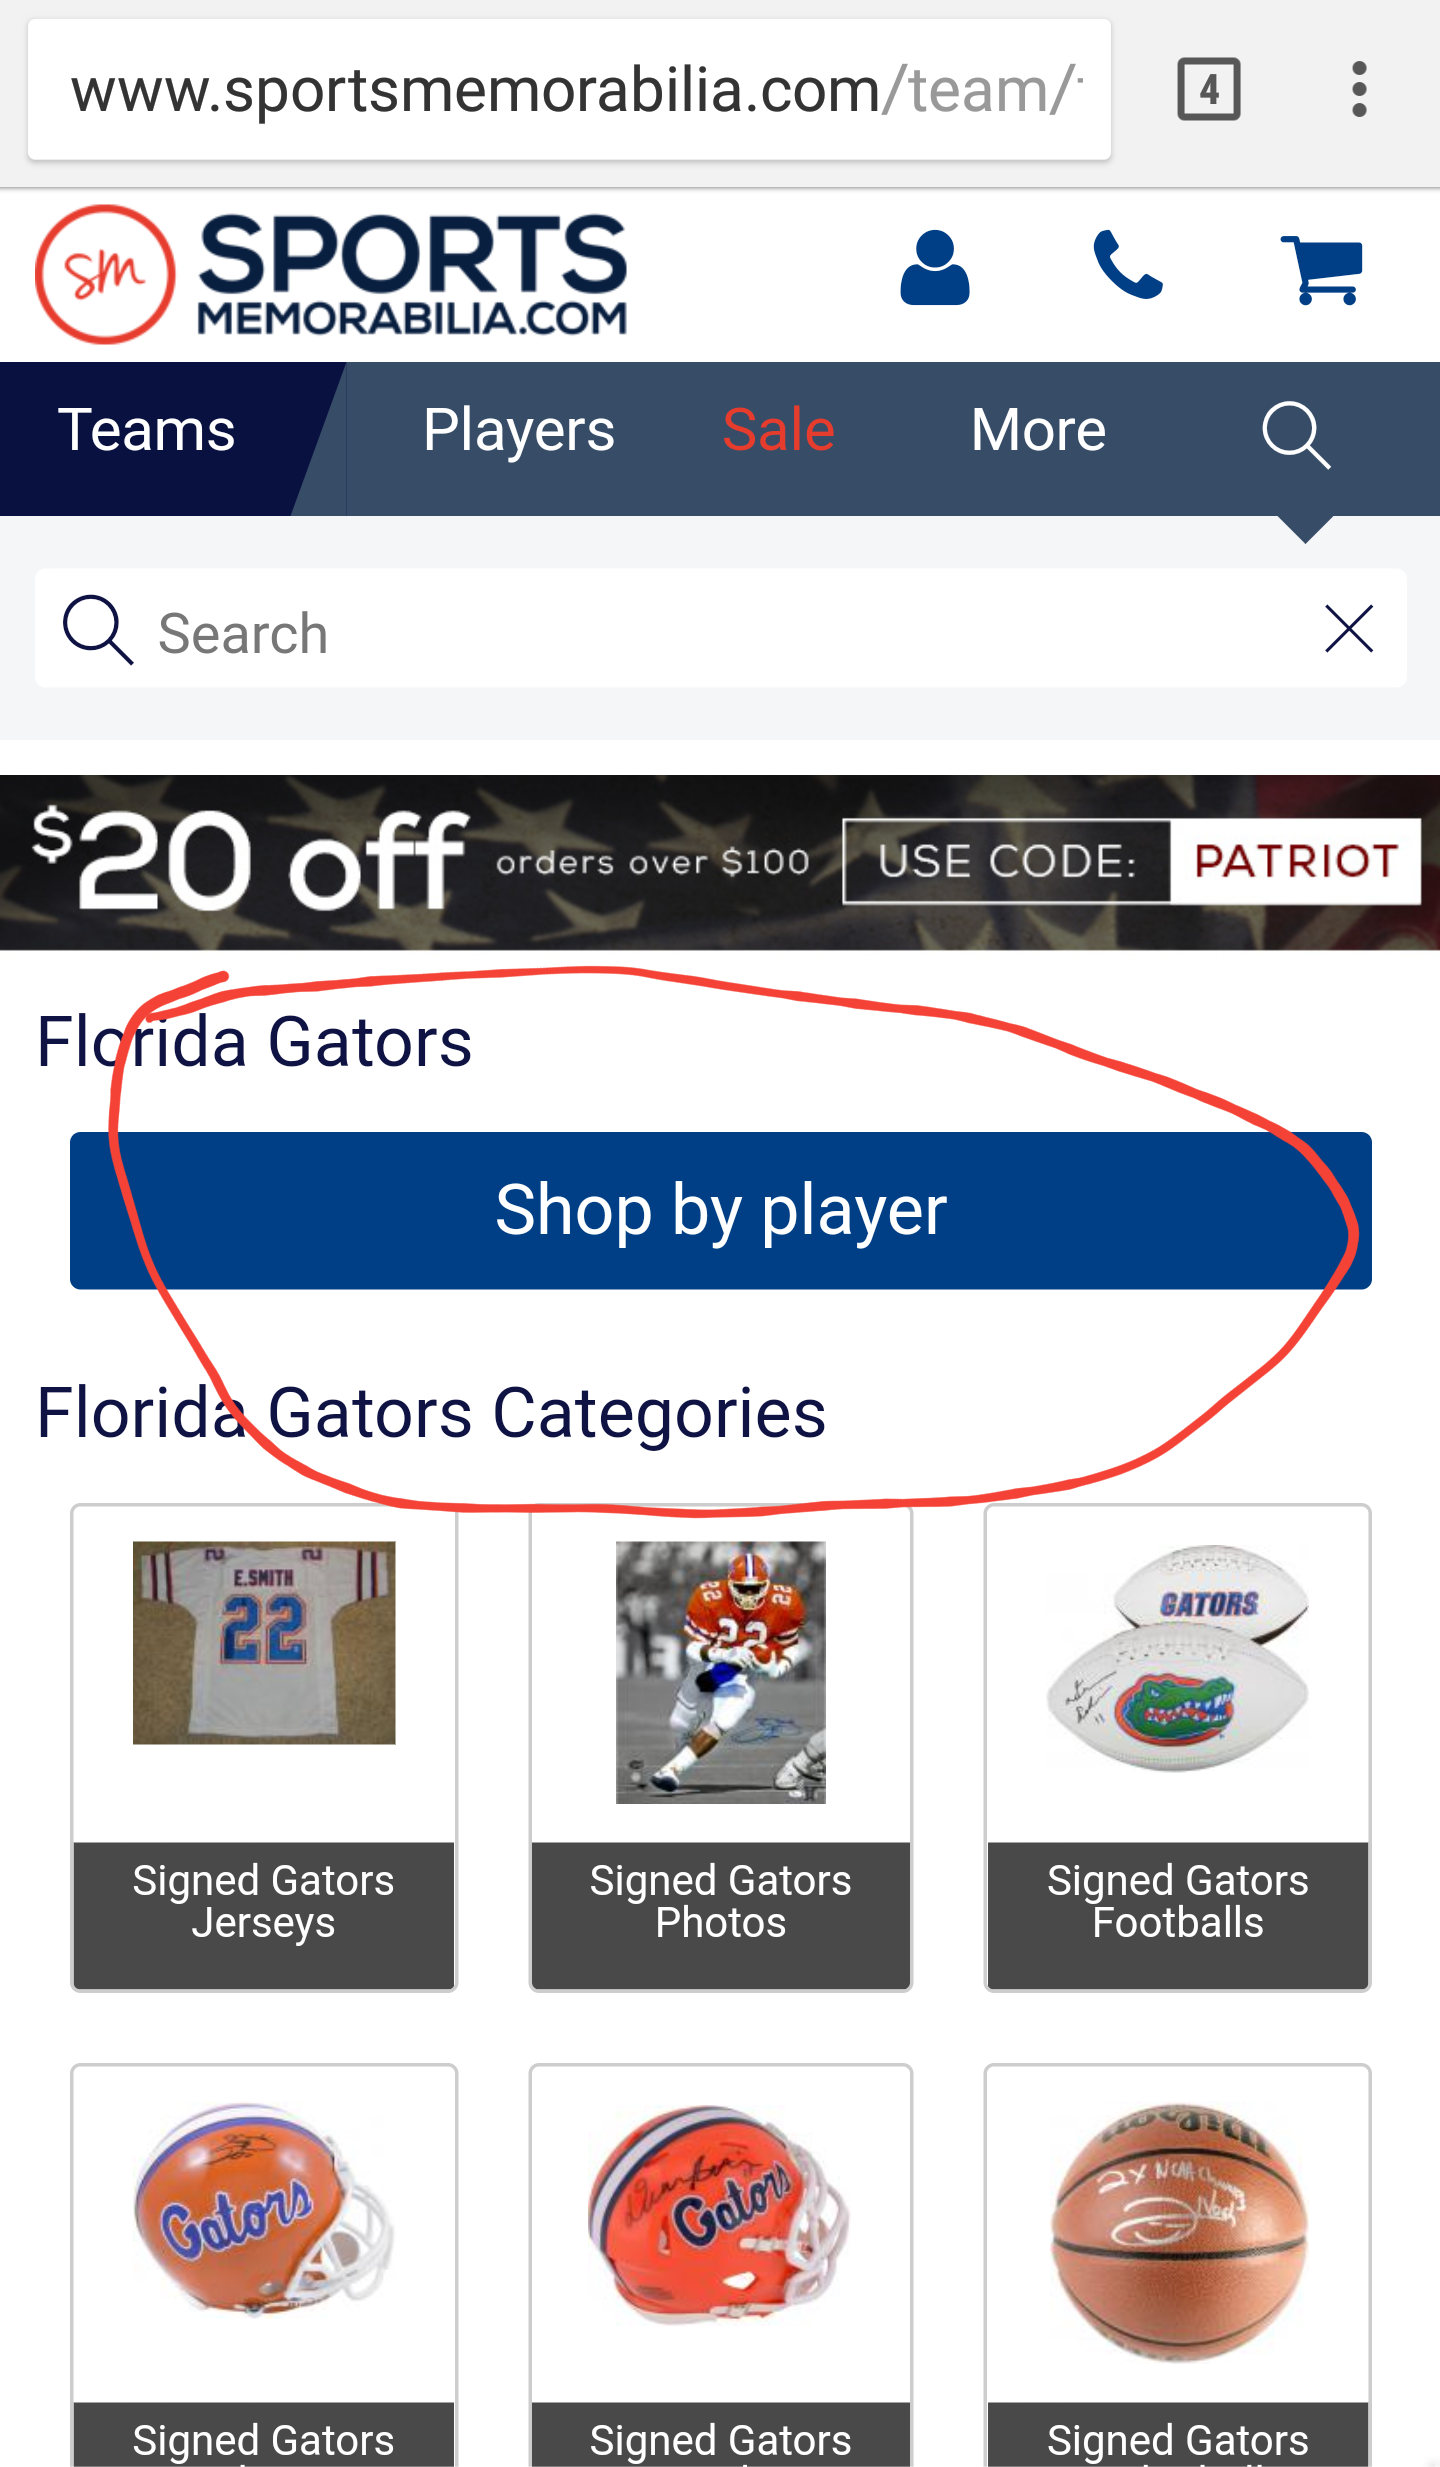 Sports Memorabilia's Mobile Site Categories